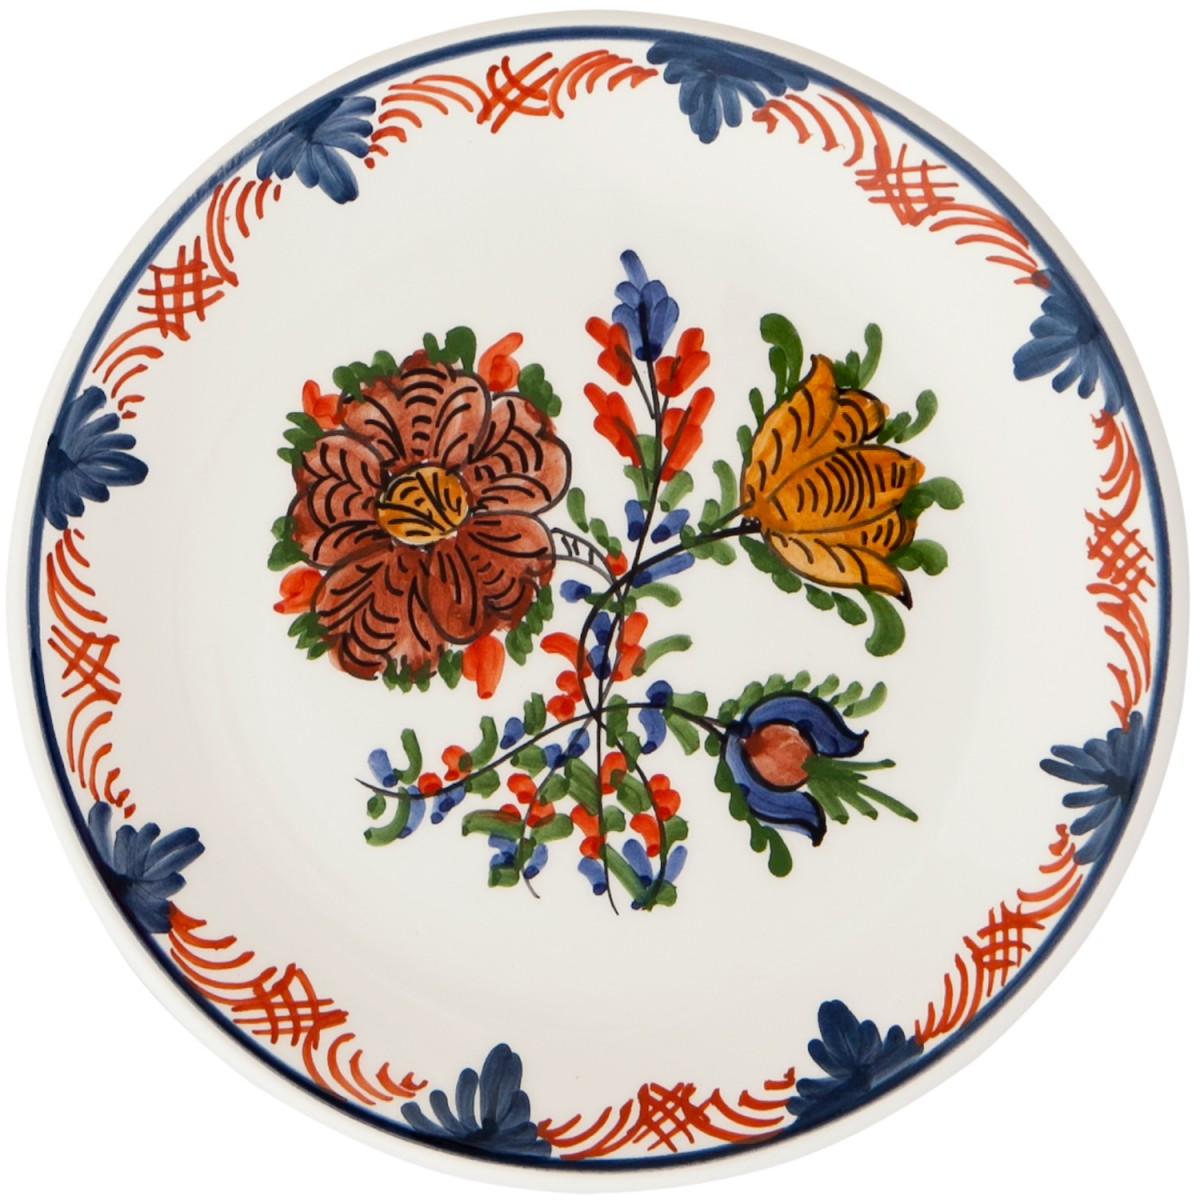 Hand_Painted_Dessert_Decorative_Plate-Blooming_Flowers-I-Skyriana_Ceramics-1